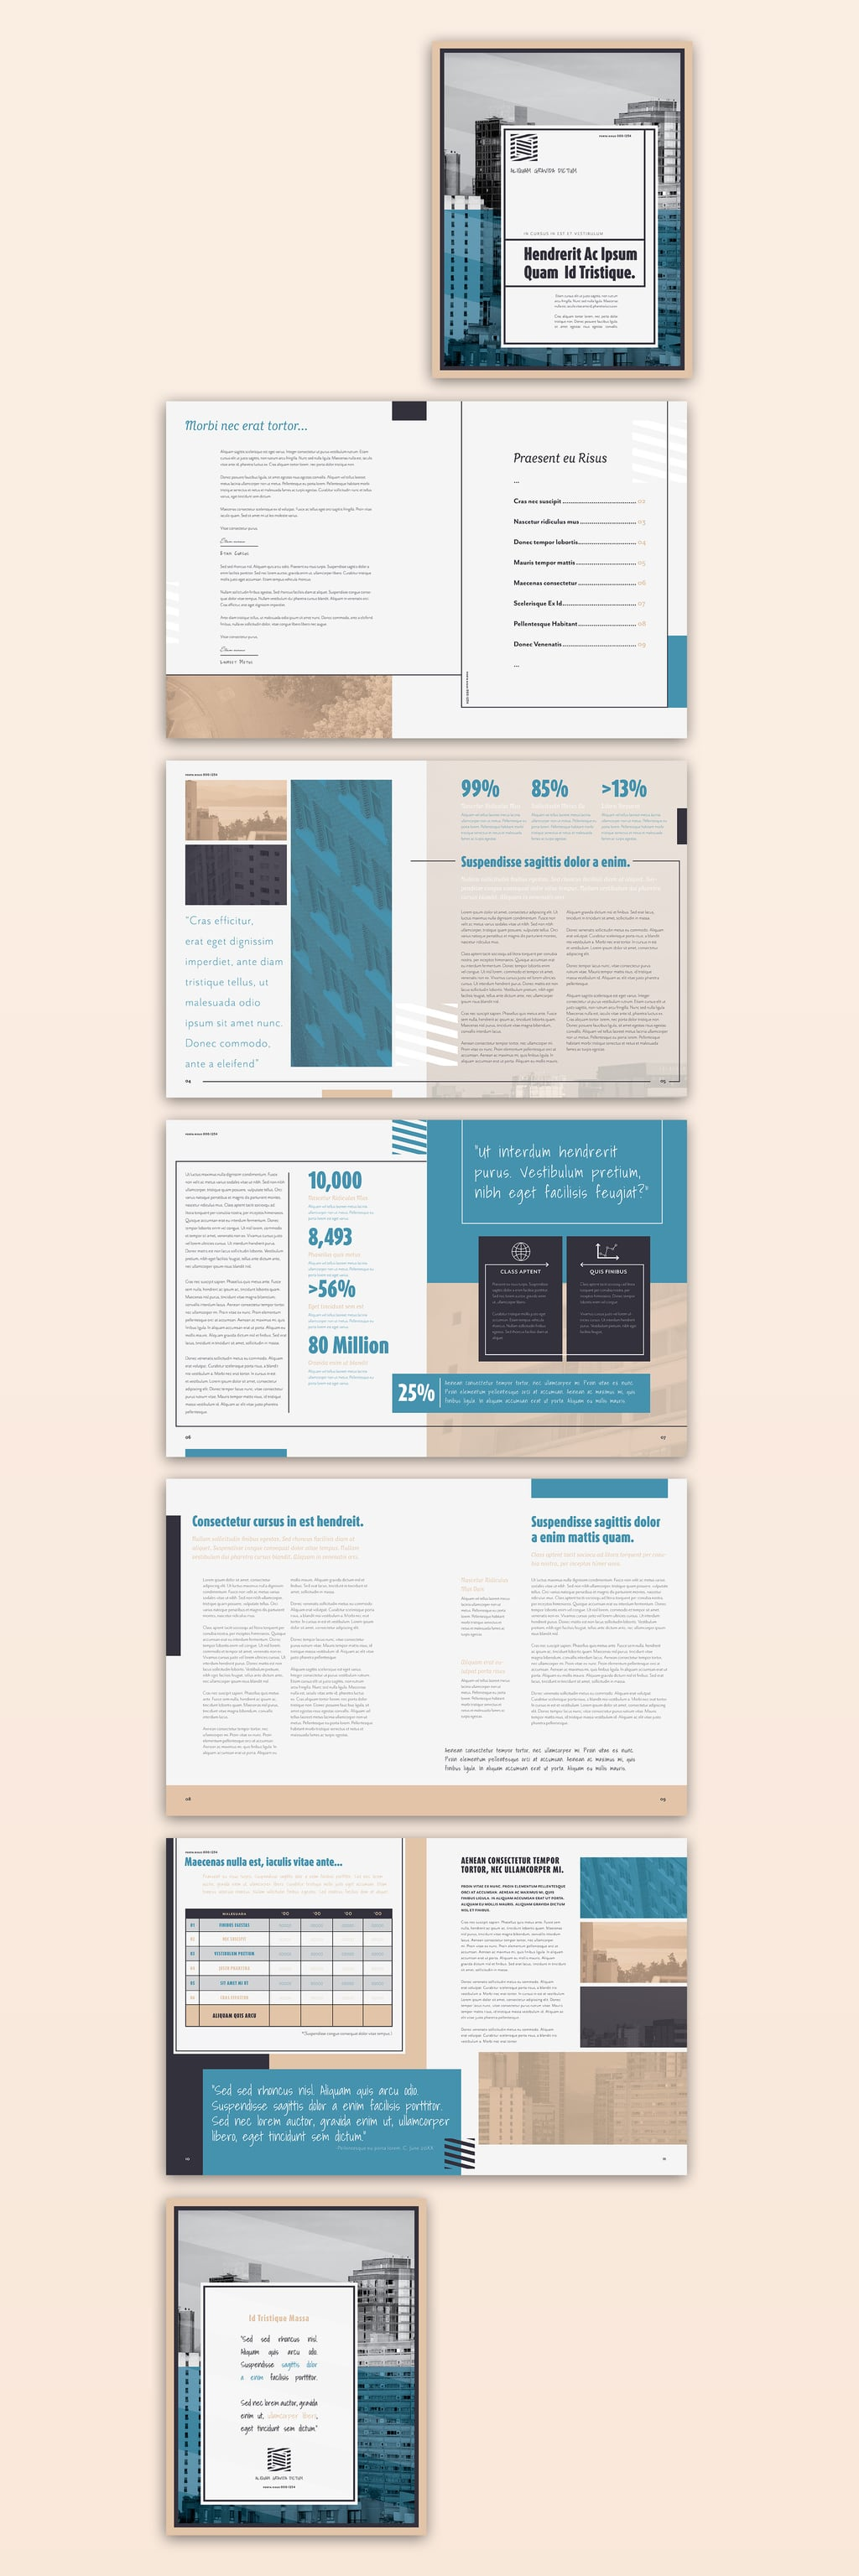 InDesign Brochure Templates Free: The statistical Layout